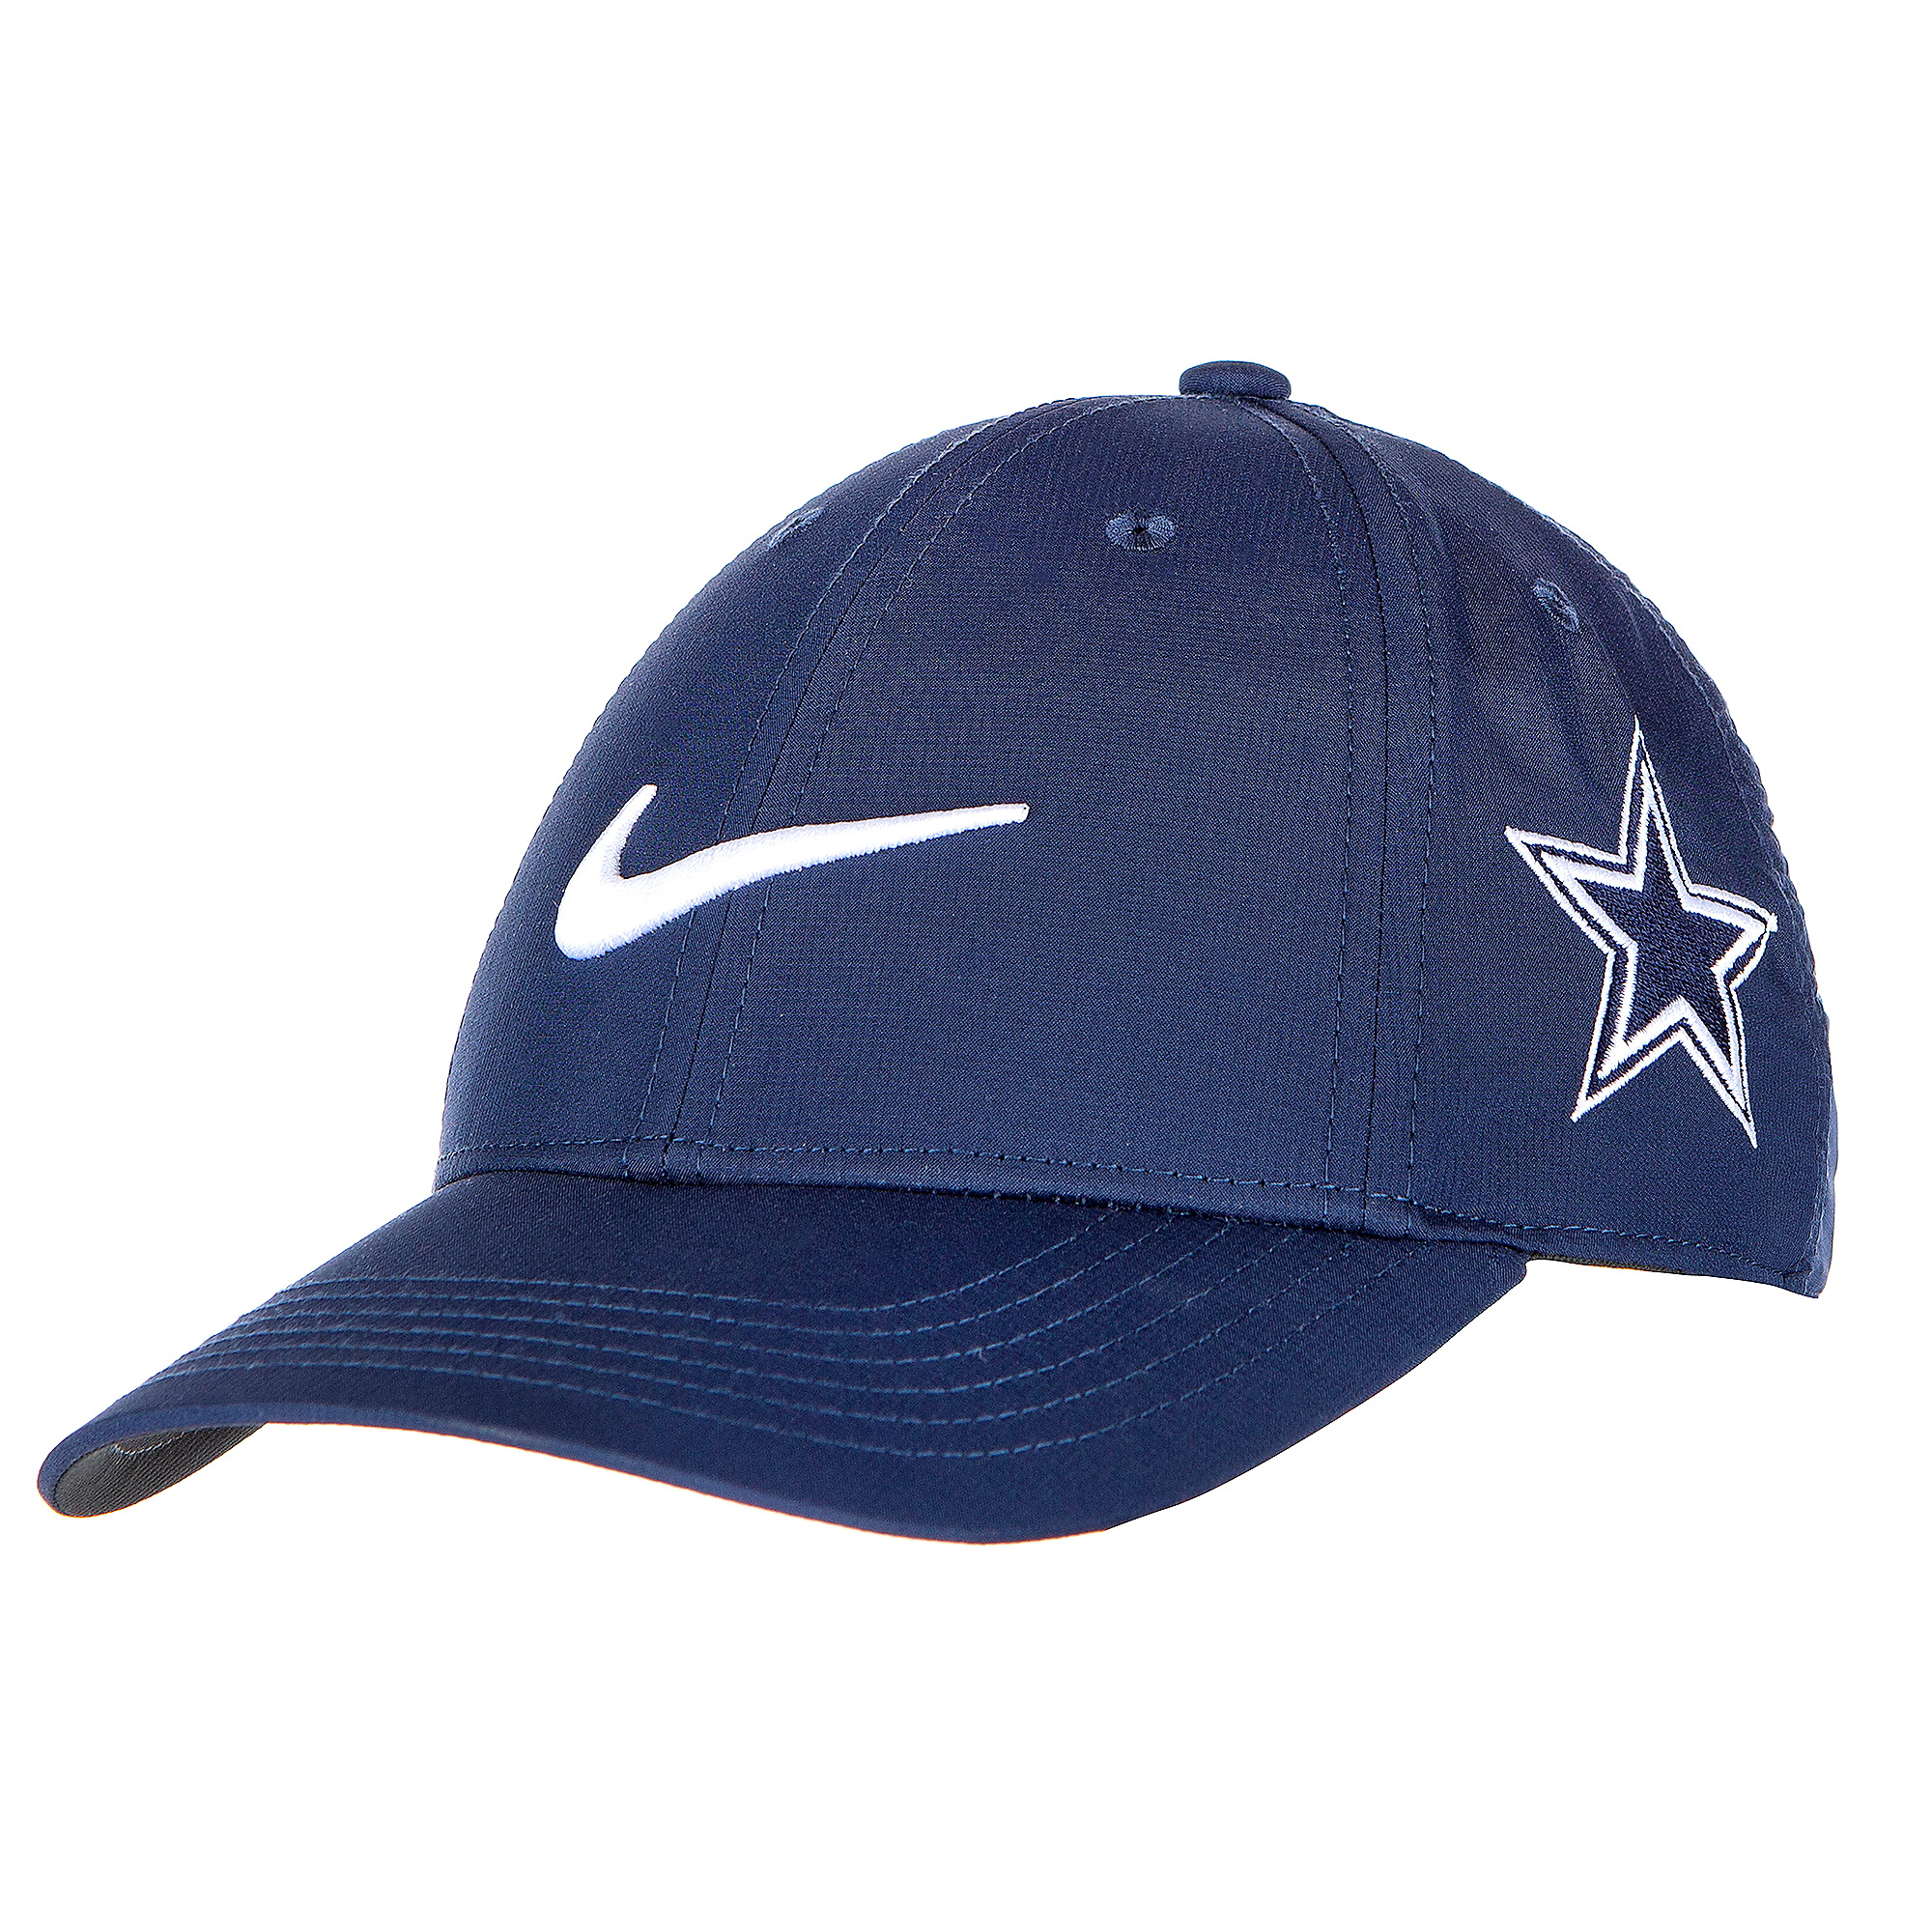 Dallas Cowboys Nike Youth Navy Golf Cap